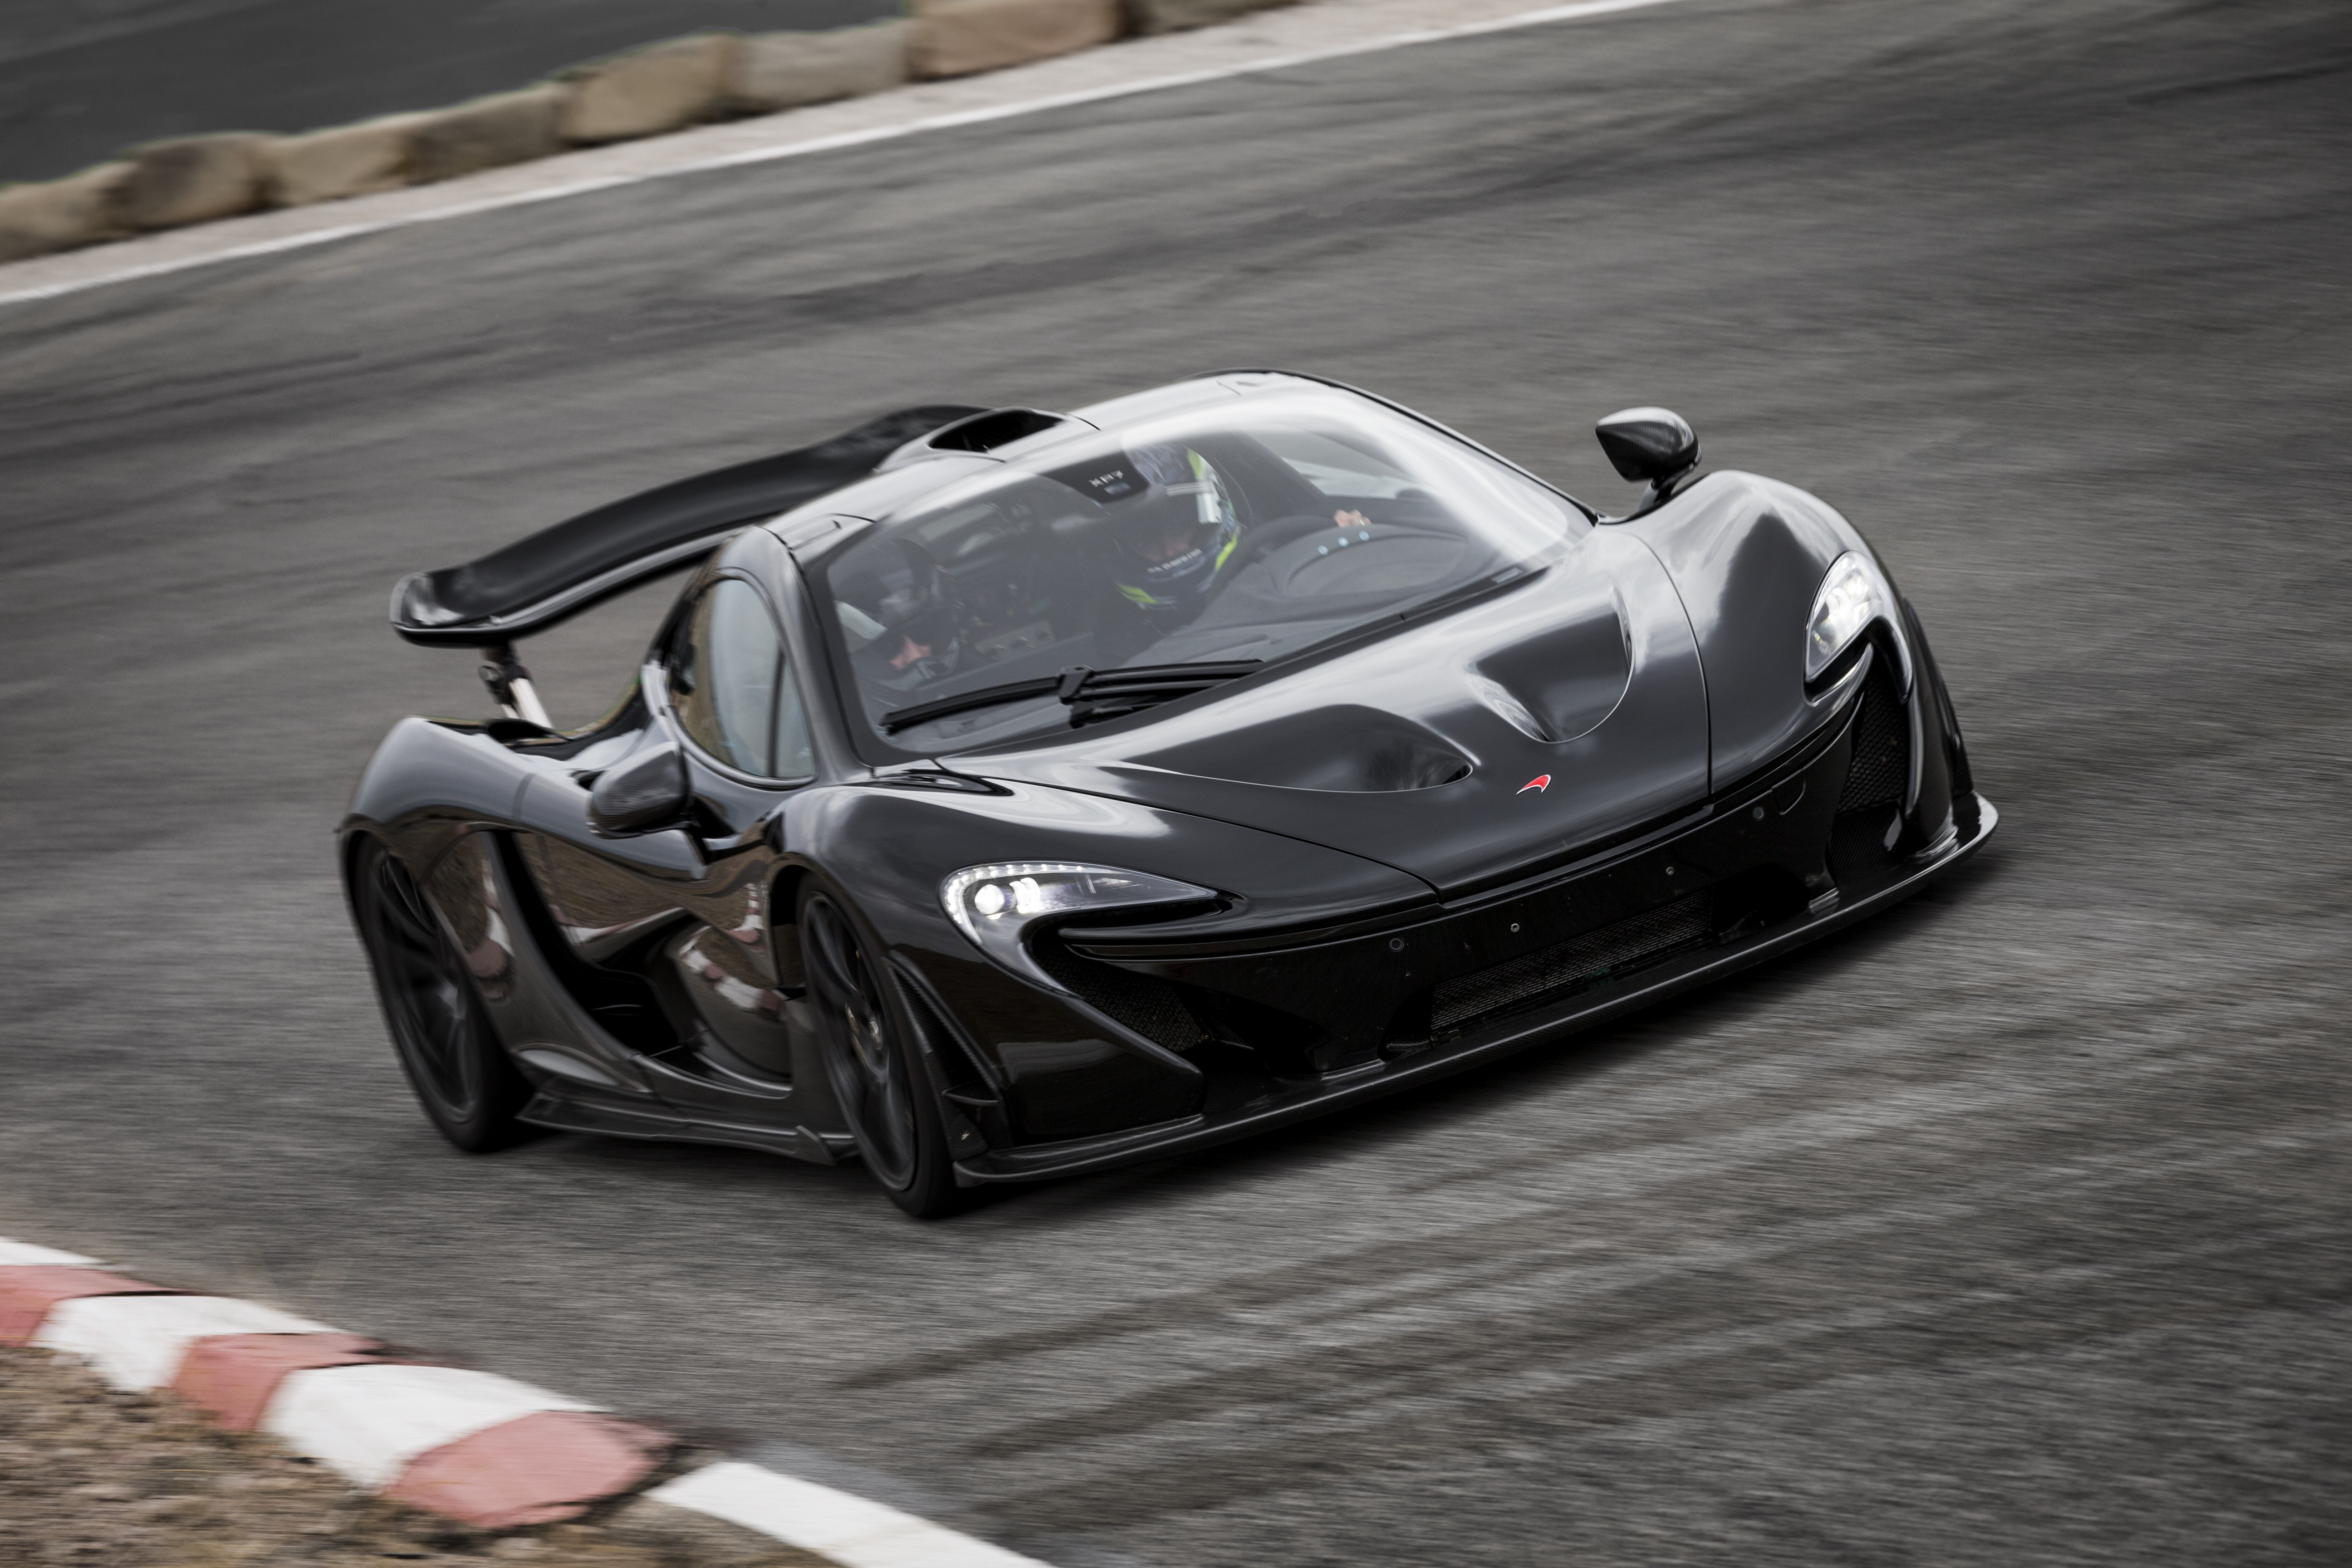 ultimate guide to the mclaren p1: review, price, specs, videos & more